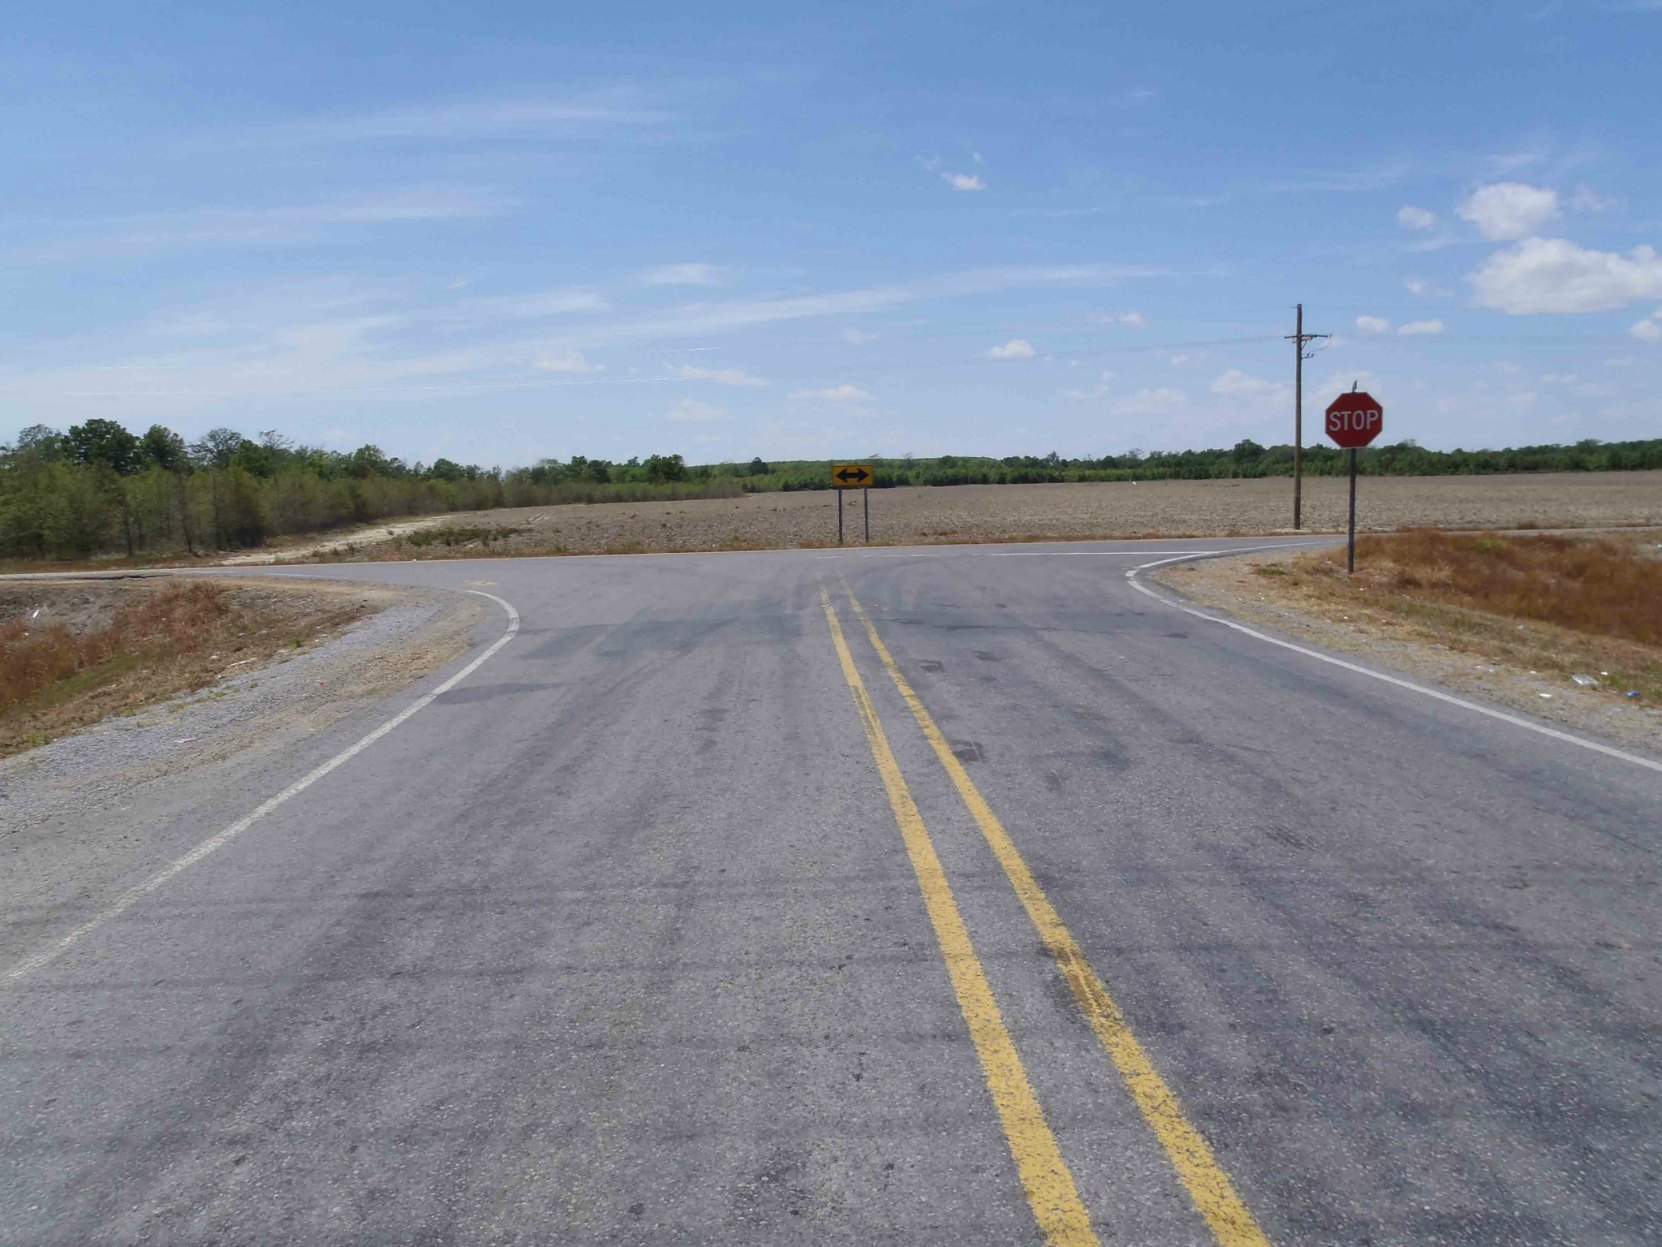 The second reputed site of Robert Johnson's poisoning in 1938, Highway 7 and Leflore County Road 512, near Quito, Leflore County, Mississippi, looking west.